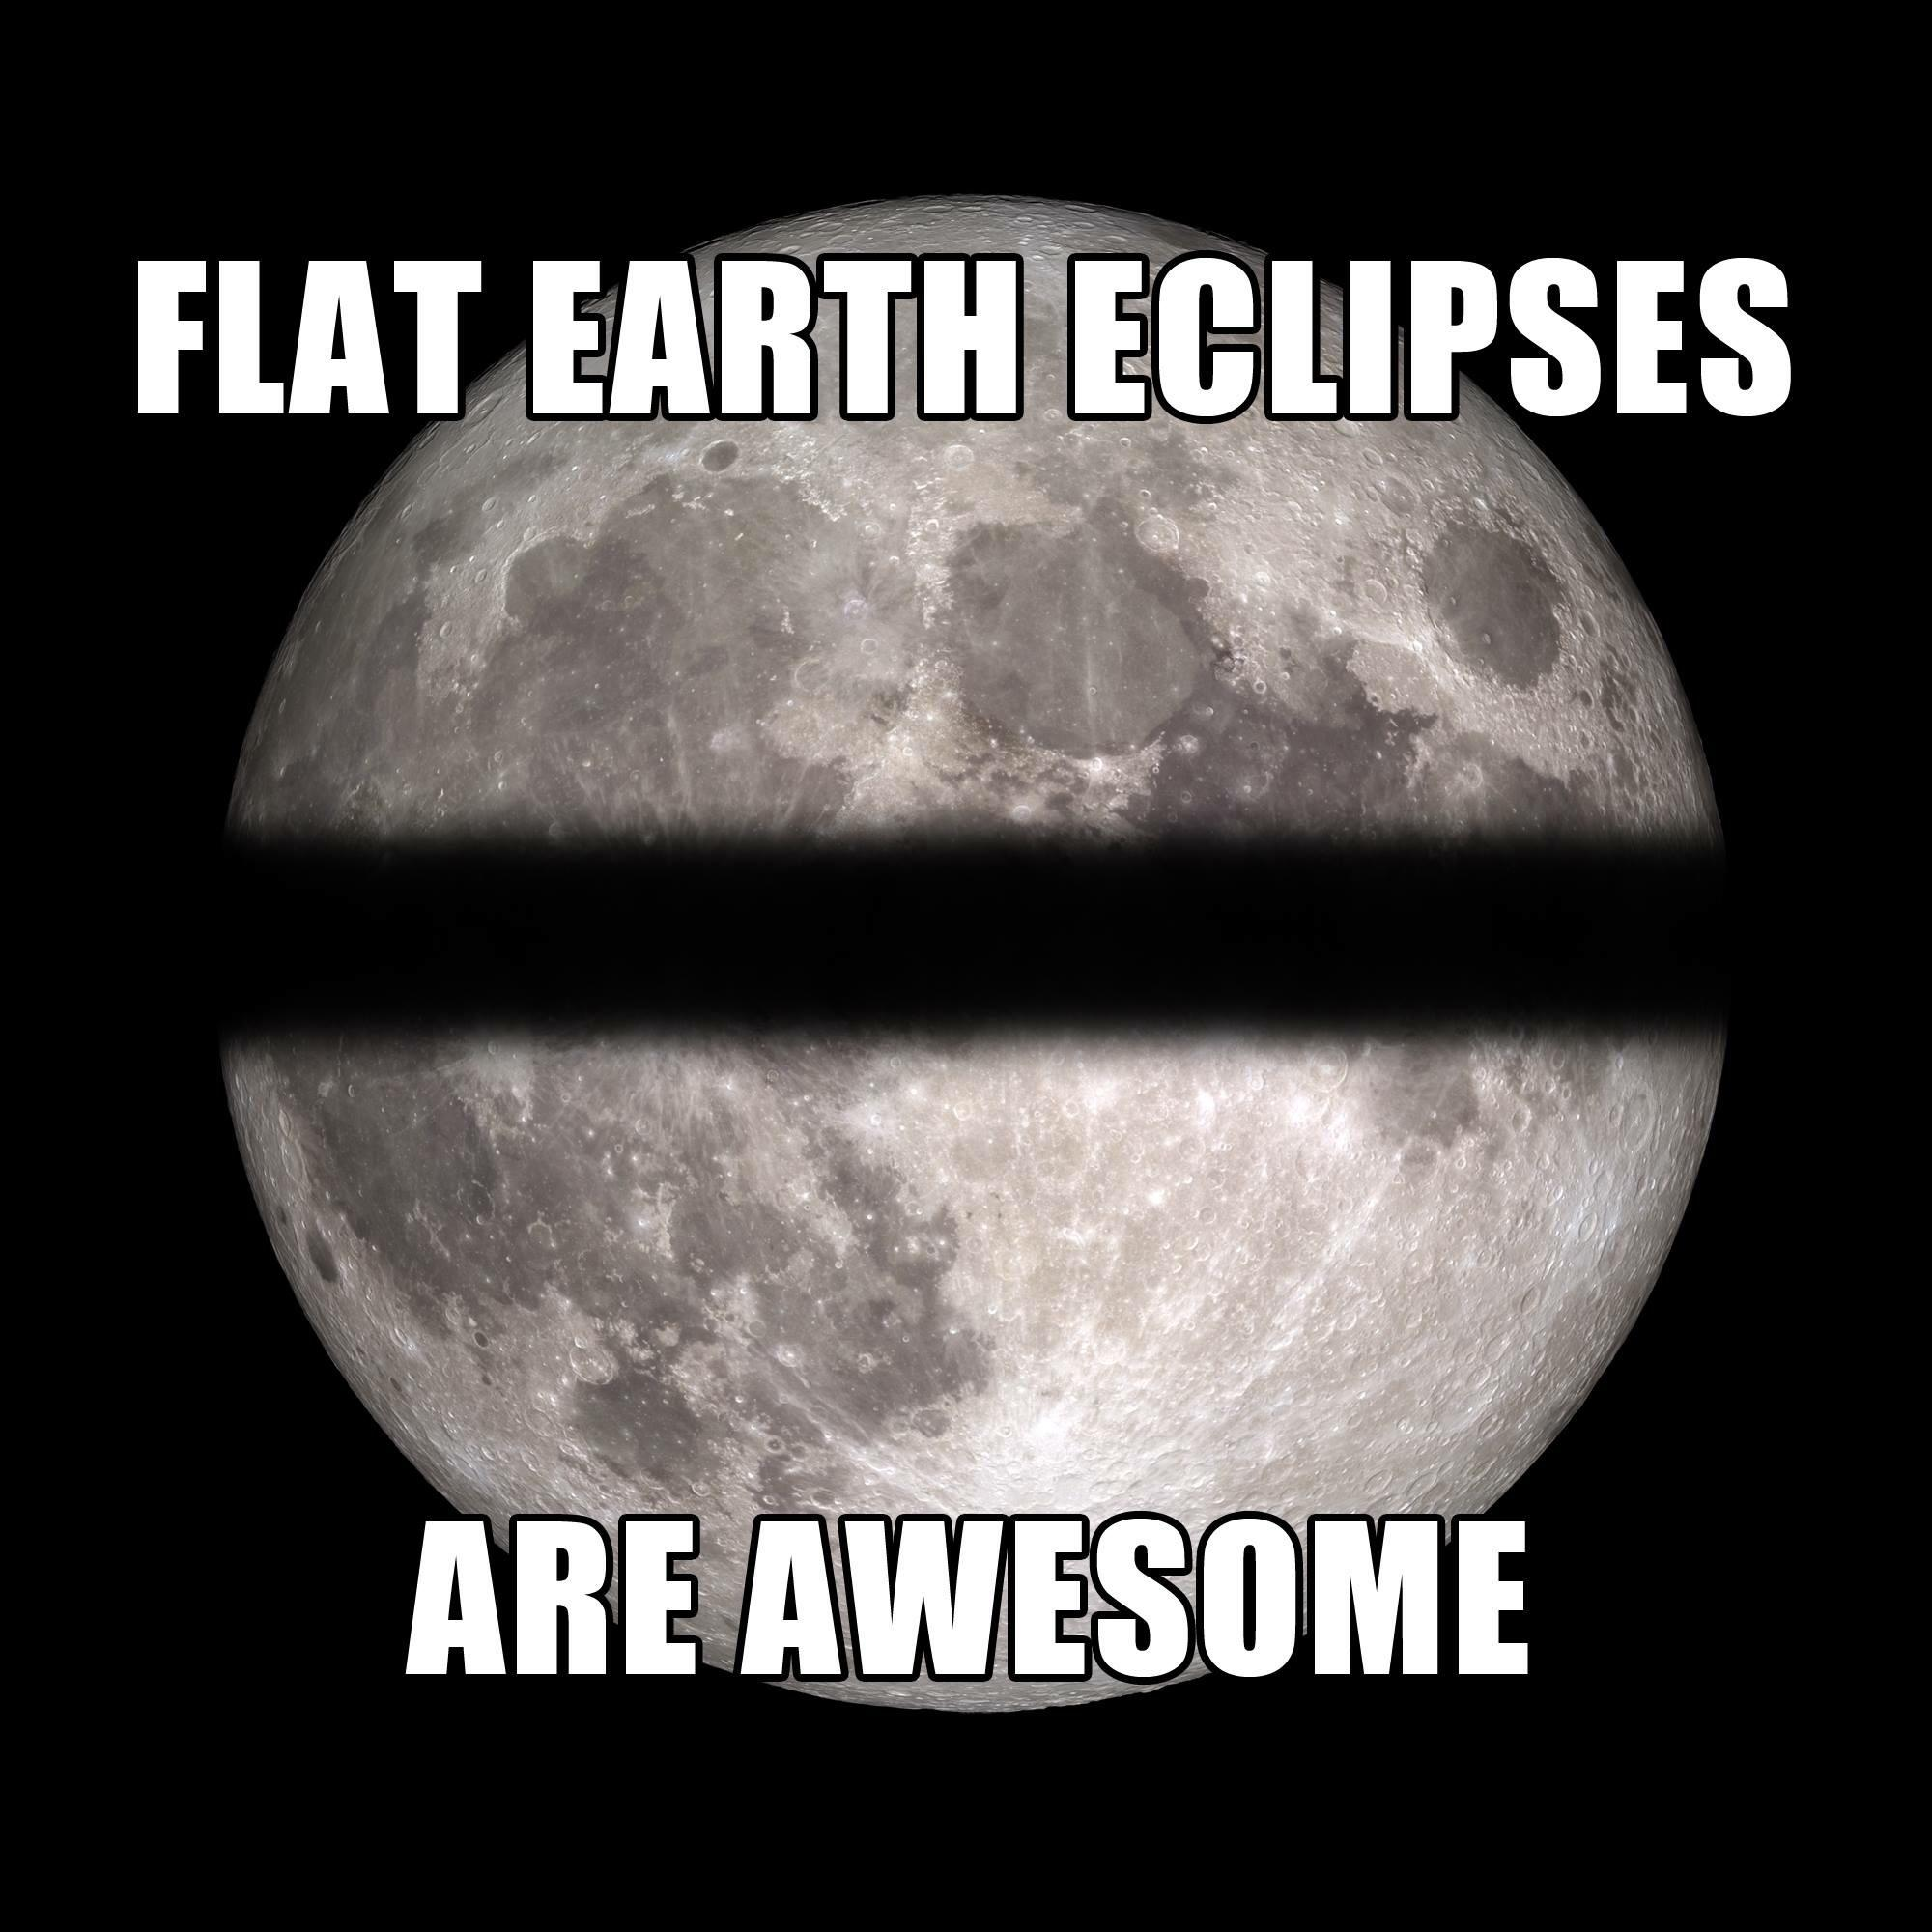 Flat earth lunar eclipse